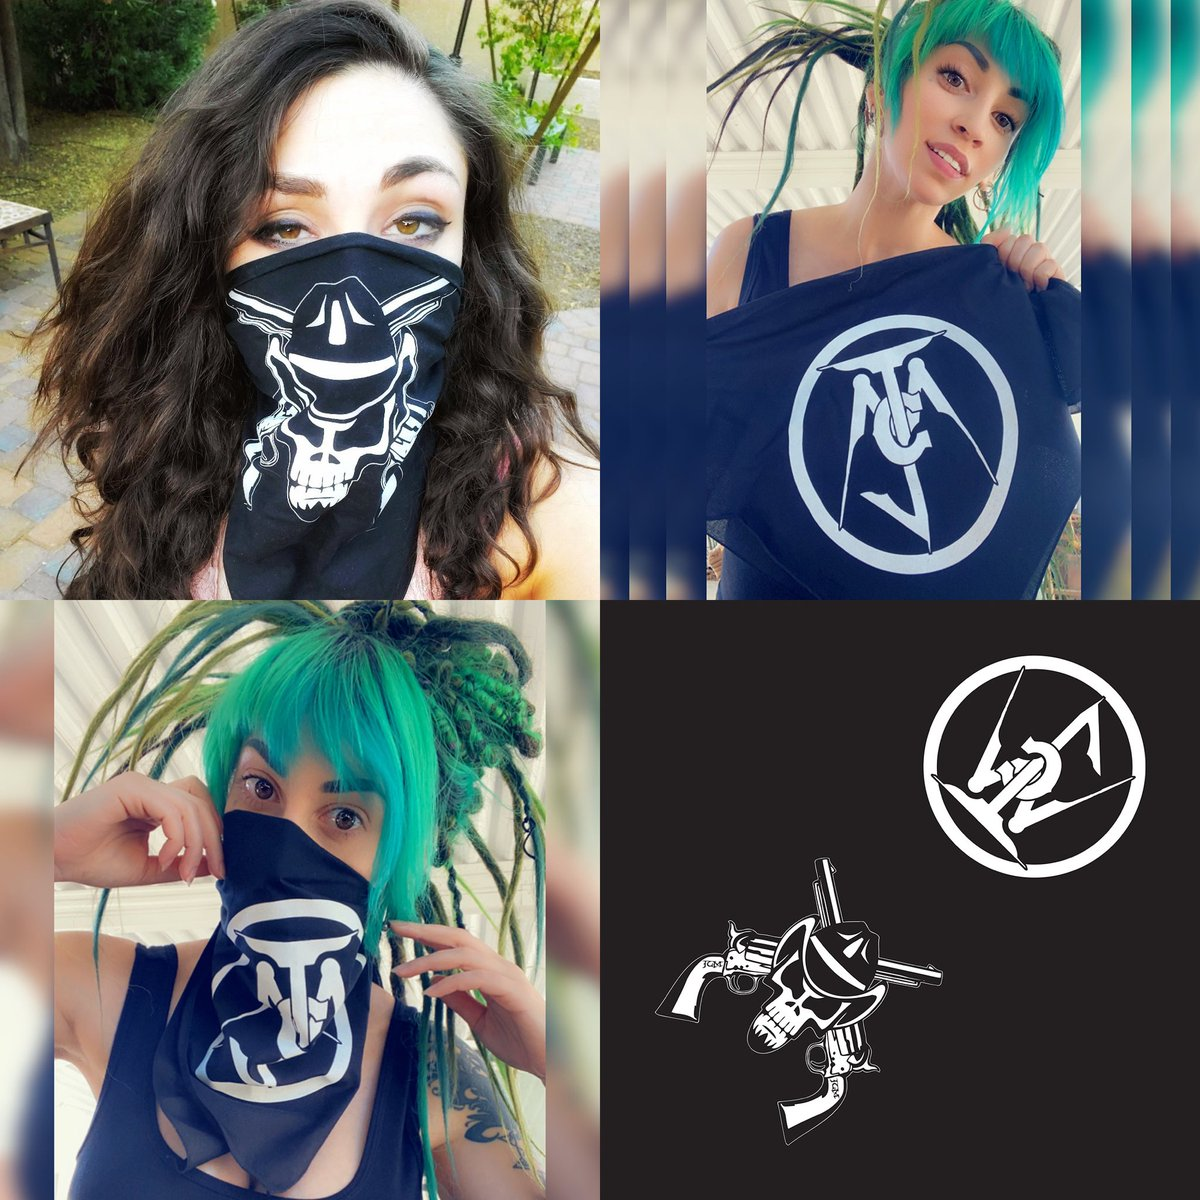 FREE BANDANA with any purchase on my website!